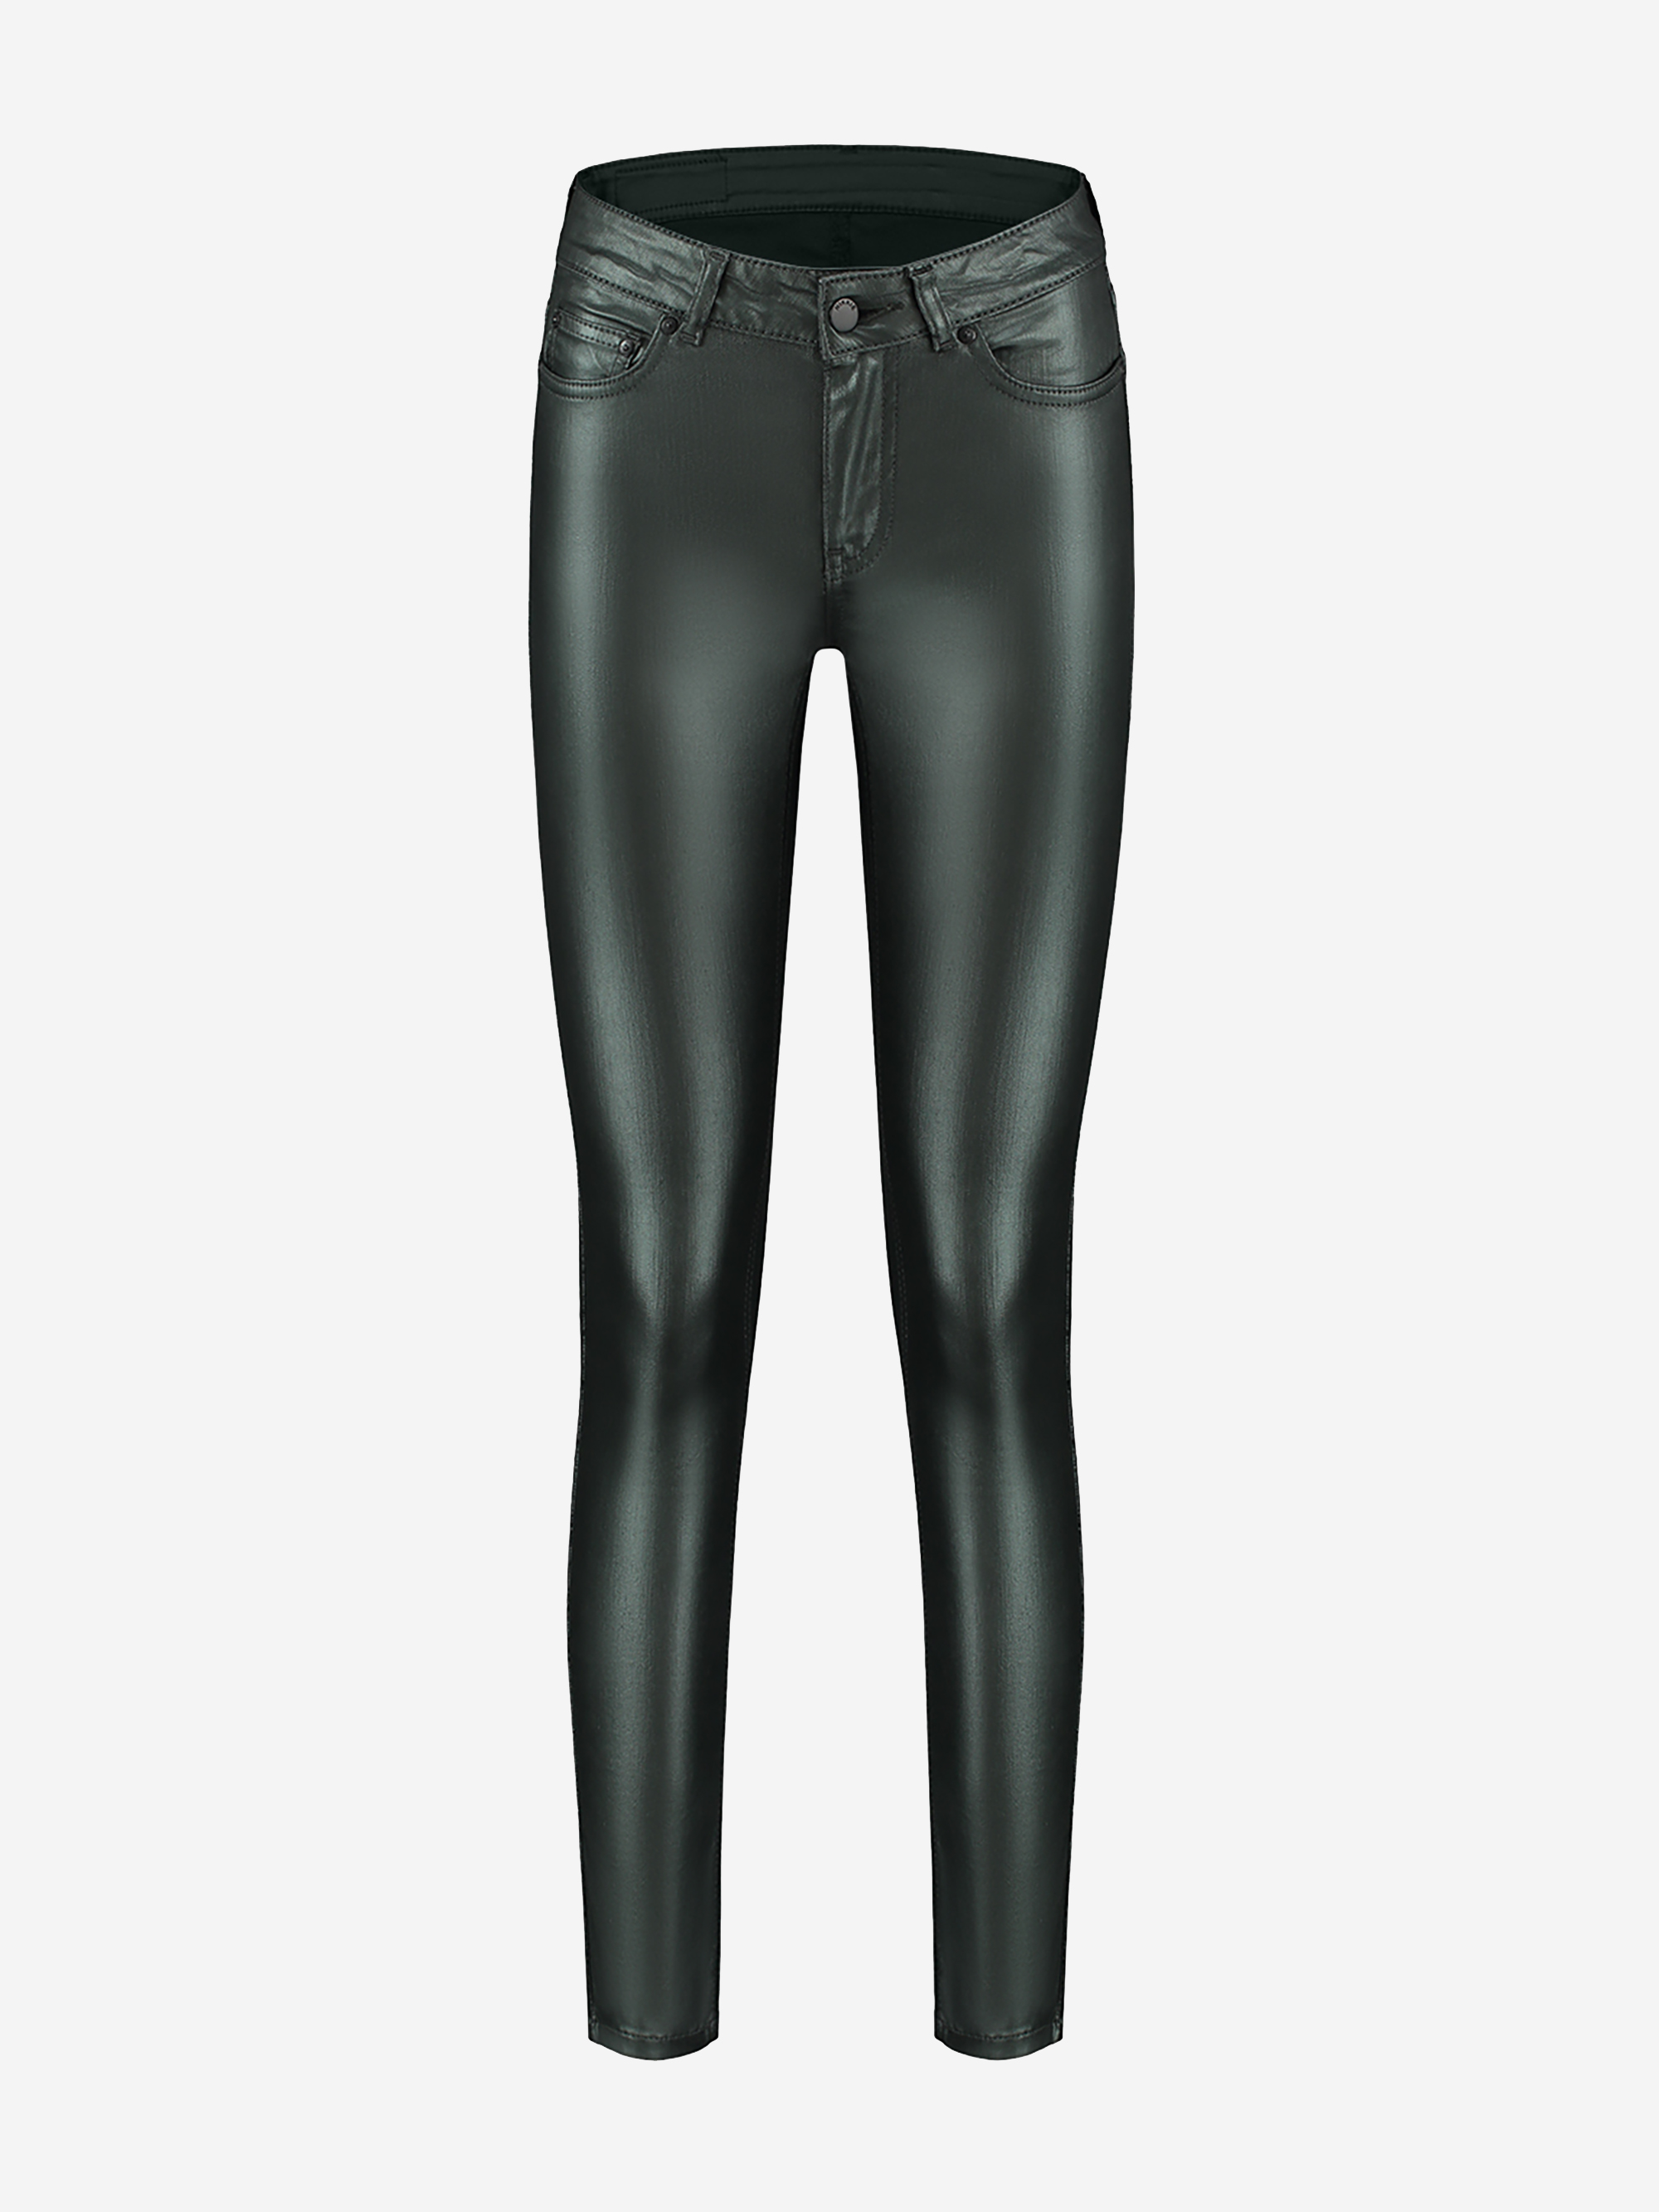 Skinny dames jeans met groene glanslaag Nikkie - Betty Coated Skinny - N2-640 1905 5506